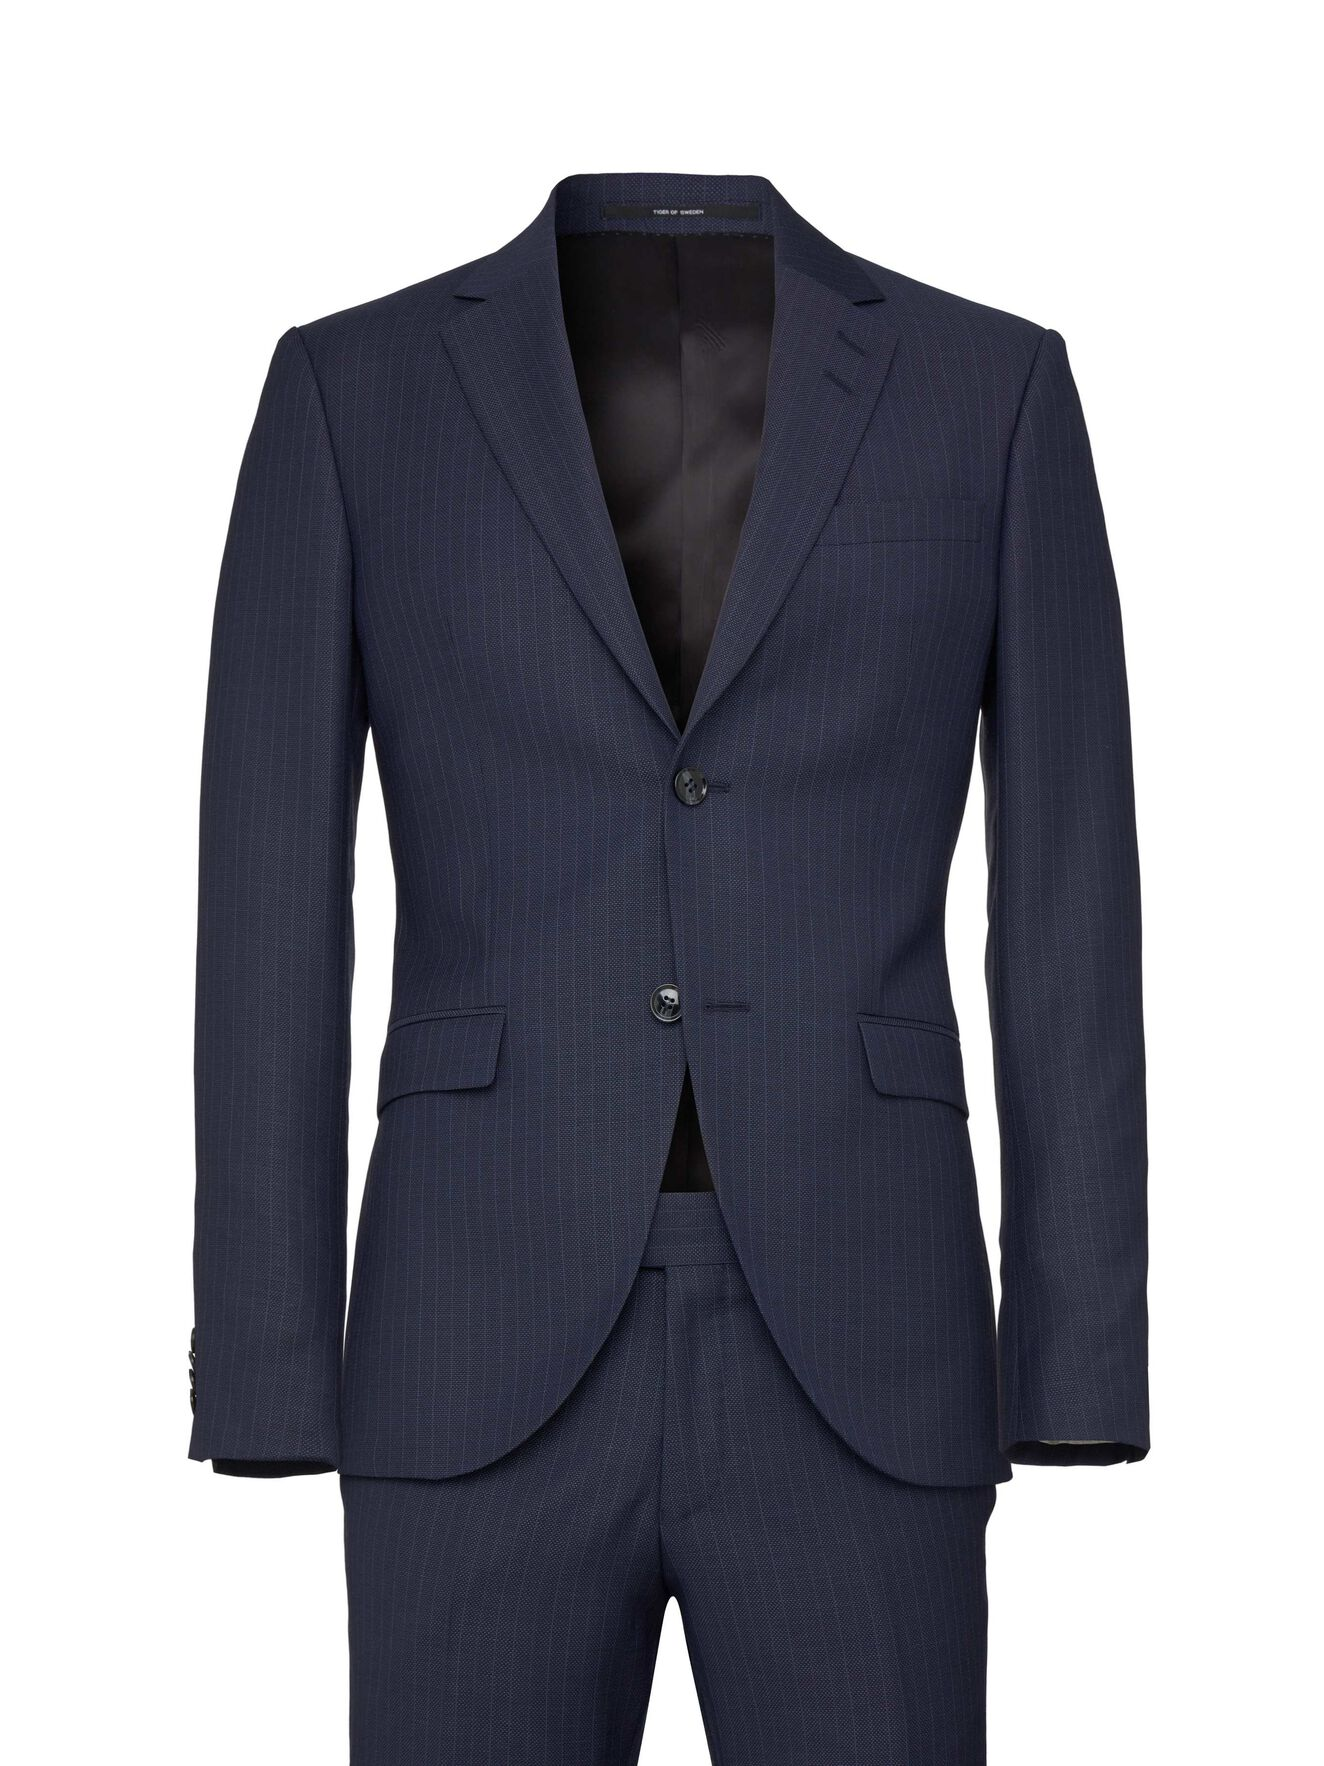 Lamonte Suit in Outer Blue from Tiger of Sweden